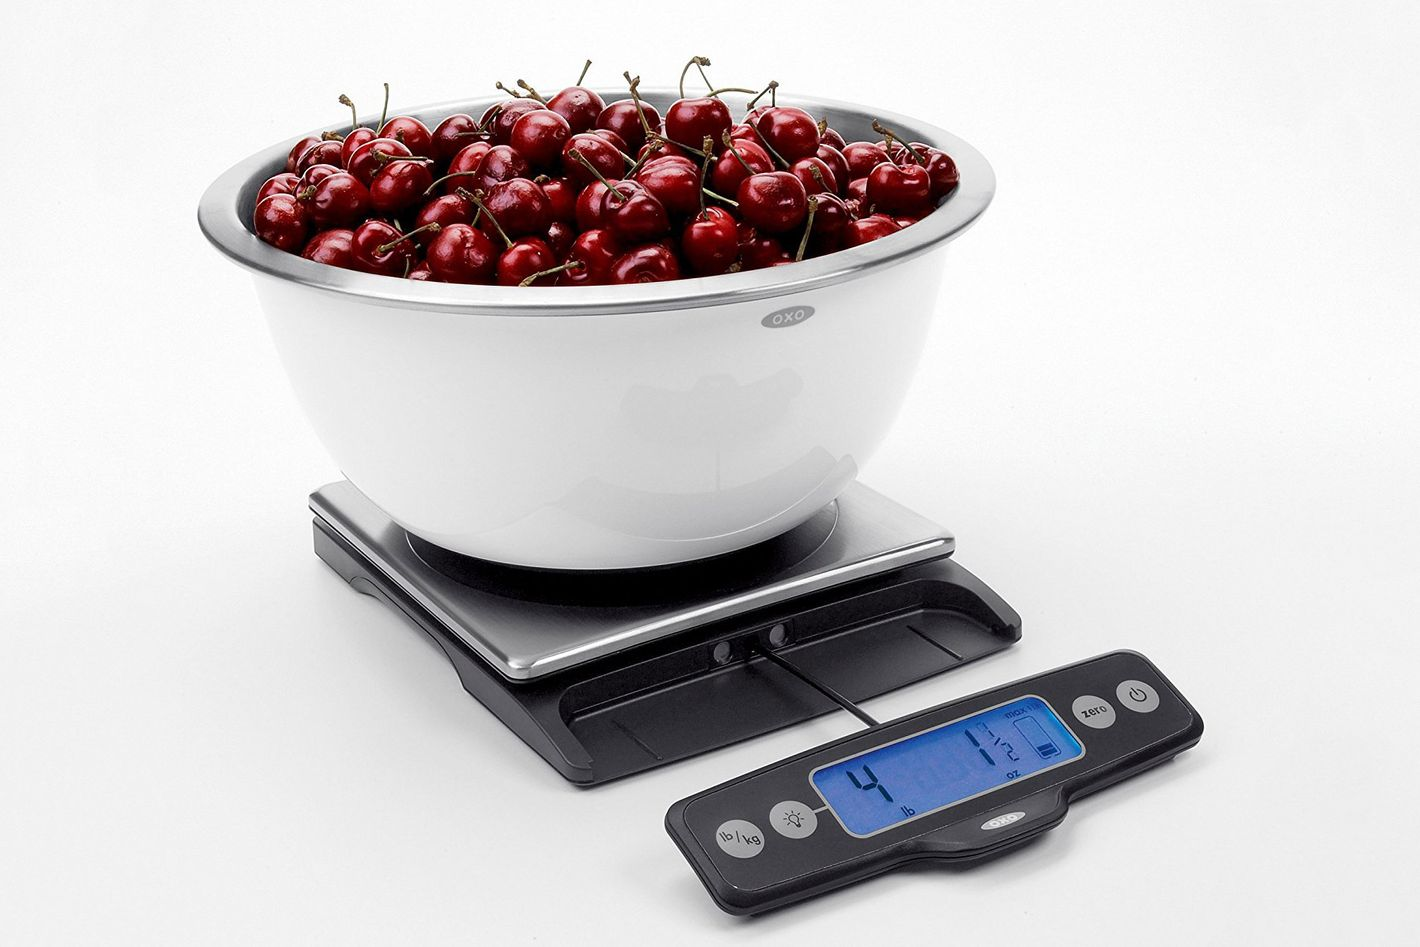 oxo stainless steel kitchen scale with pull-out display